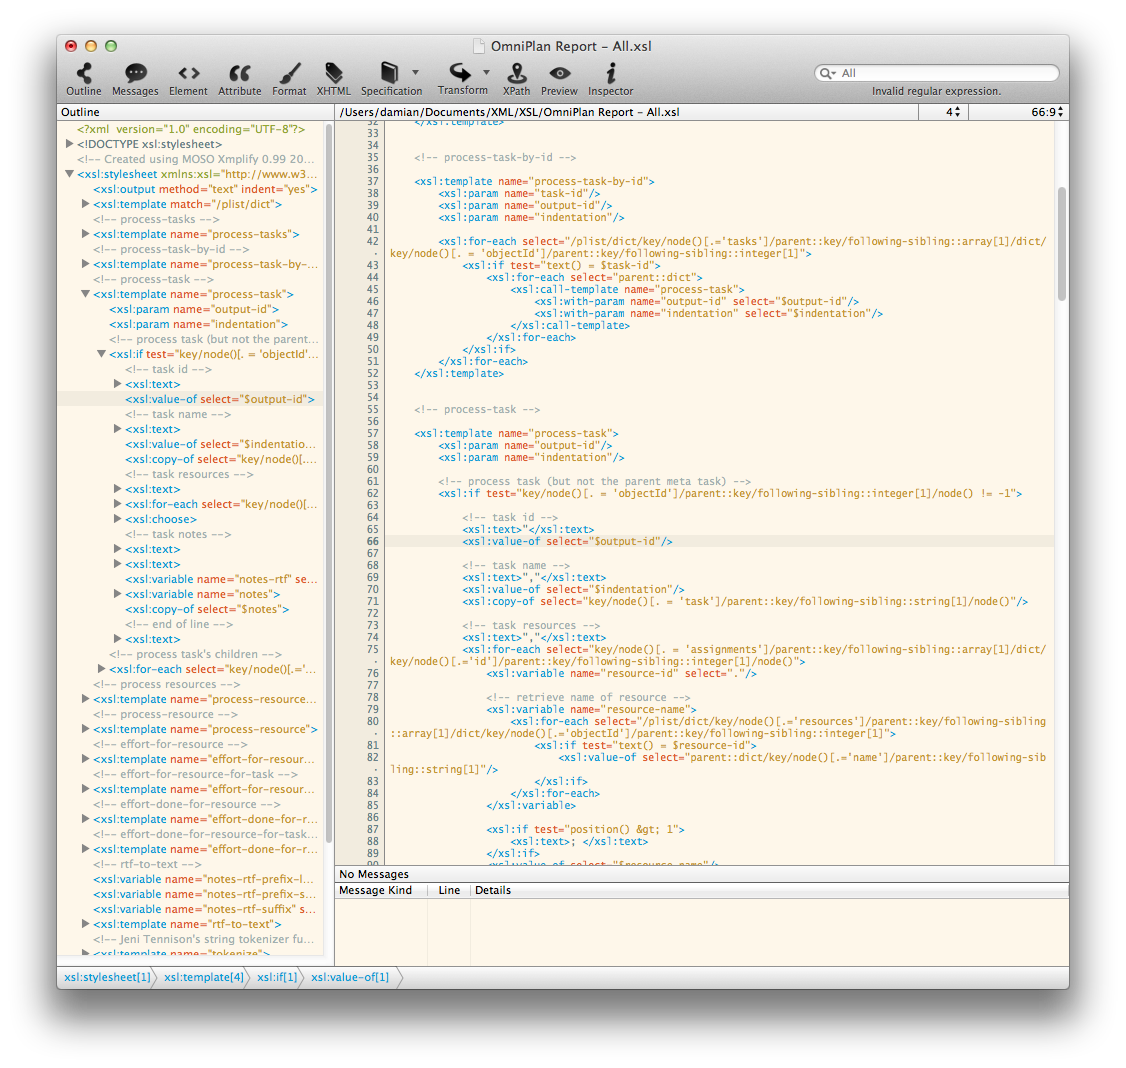 MOSO Releases Xmplify XML Editor for Mac OS X Version 1.8.0 Image